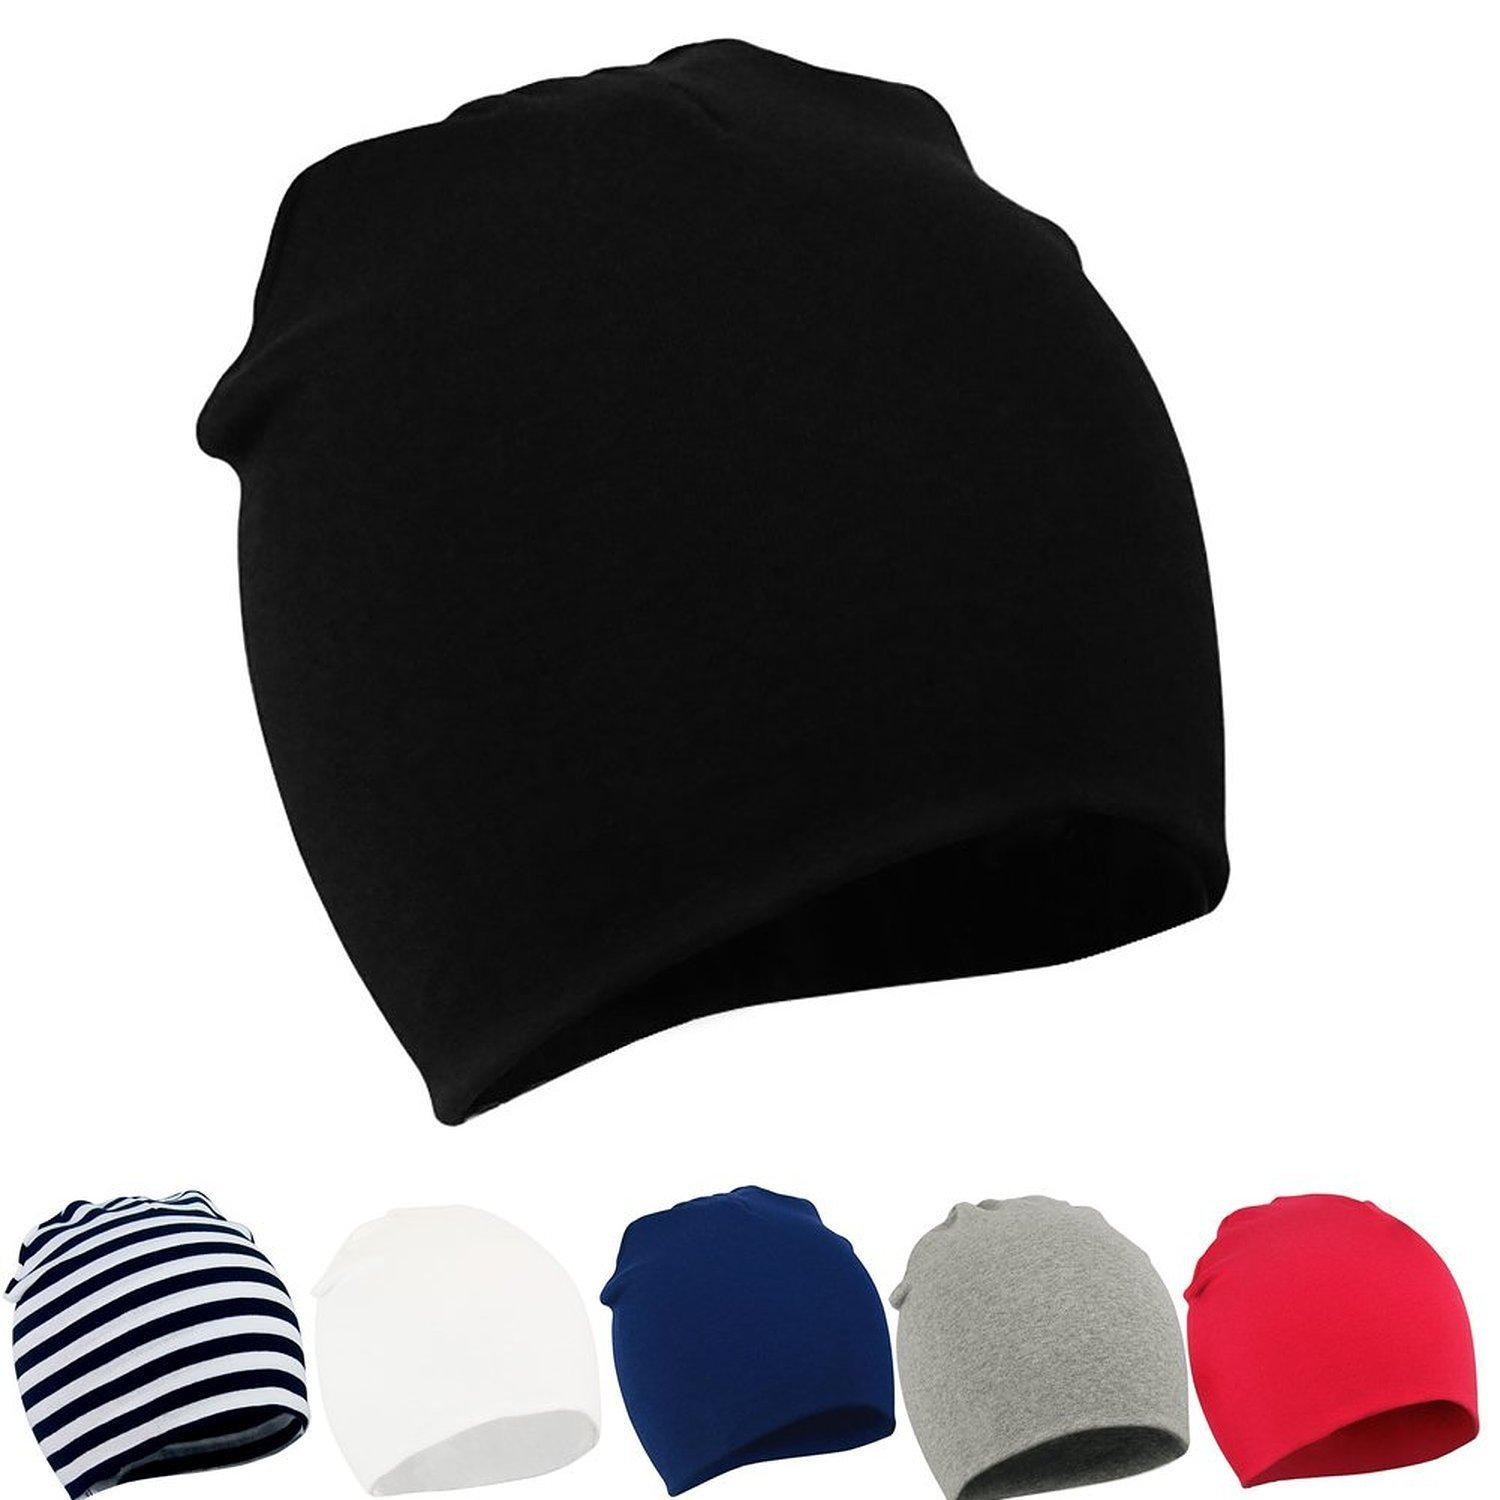 Century Star Unisex Lovely Cotton Beanie Hats for Cute Baby Boy/Girl Soft Toddler Infant Cap NCUC3S0463A0000SN